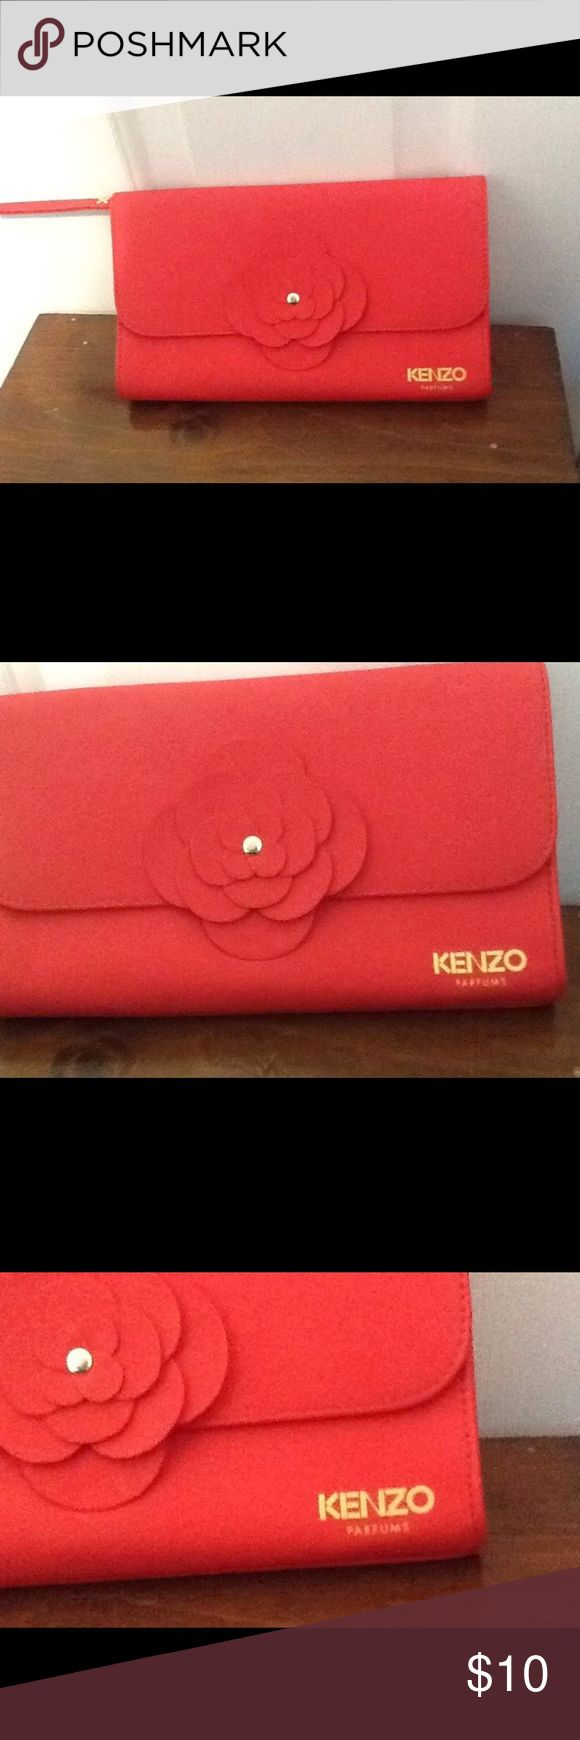 Kenzo Parfums Red Faux Leather Makeup Bag Kenzo Parfums Red Faux Leather With Flower Cosmetic Makeup Bag. New never been used. Kenzo Bags Cosmetic Bags & Cases